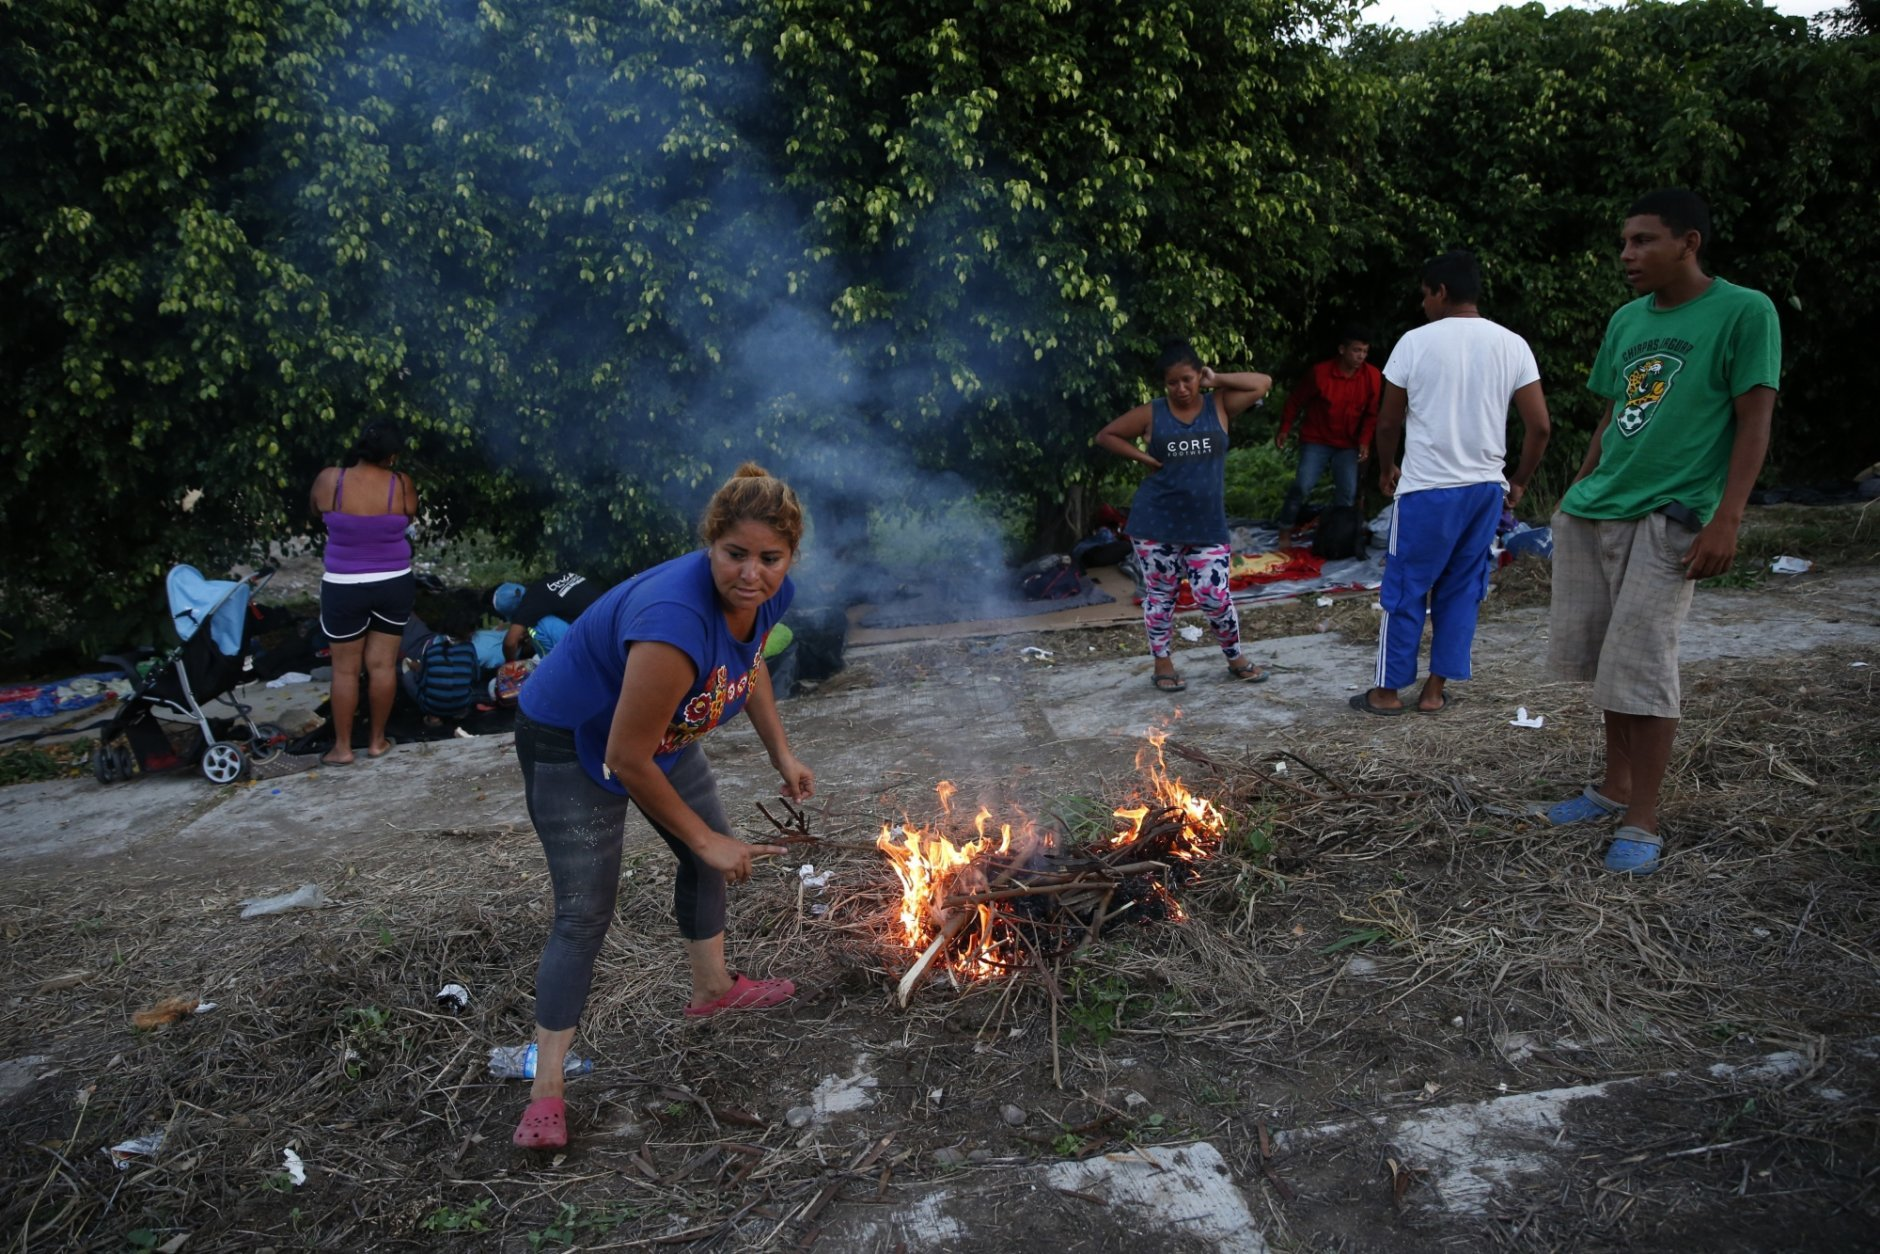 Migrants light a fire for cooking as a thousands-strong caravan of Central Americans hoping to reach the U.S. border stops for the night, in Matias Romero, Oaxaca state, Mexico, Thursday, Nov. 1, 2018. Most of the main caravan of Central American migrants spent a rain-drenched night outside, before continuing their slow walk through southern Mexico.(AP Photo/Rebecca Blackwell)